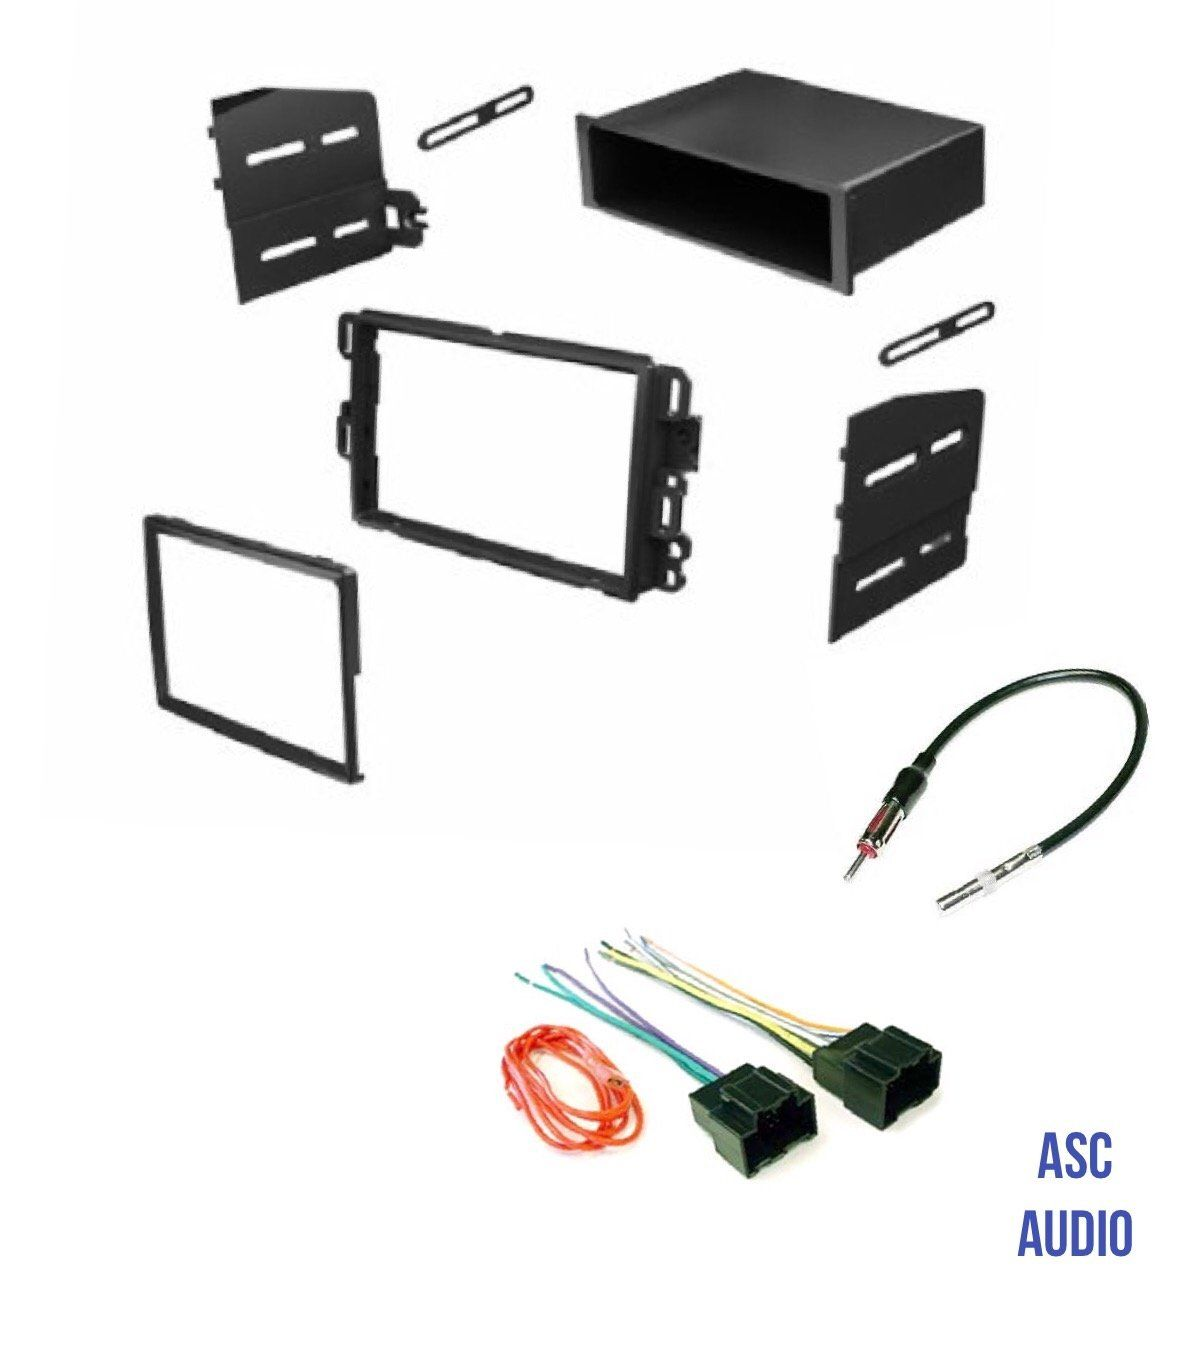 5a29dfae1512d1aaeca596a396162f89 asc audio car stereo dash kit, wire harness, and antenna adapter  at bayanpartner.co